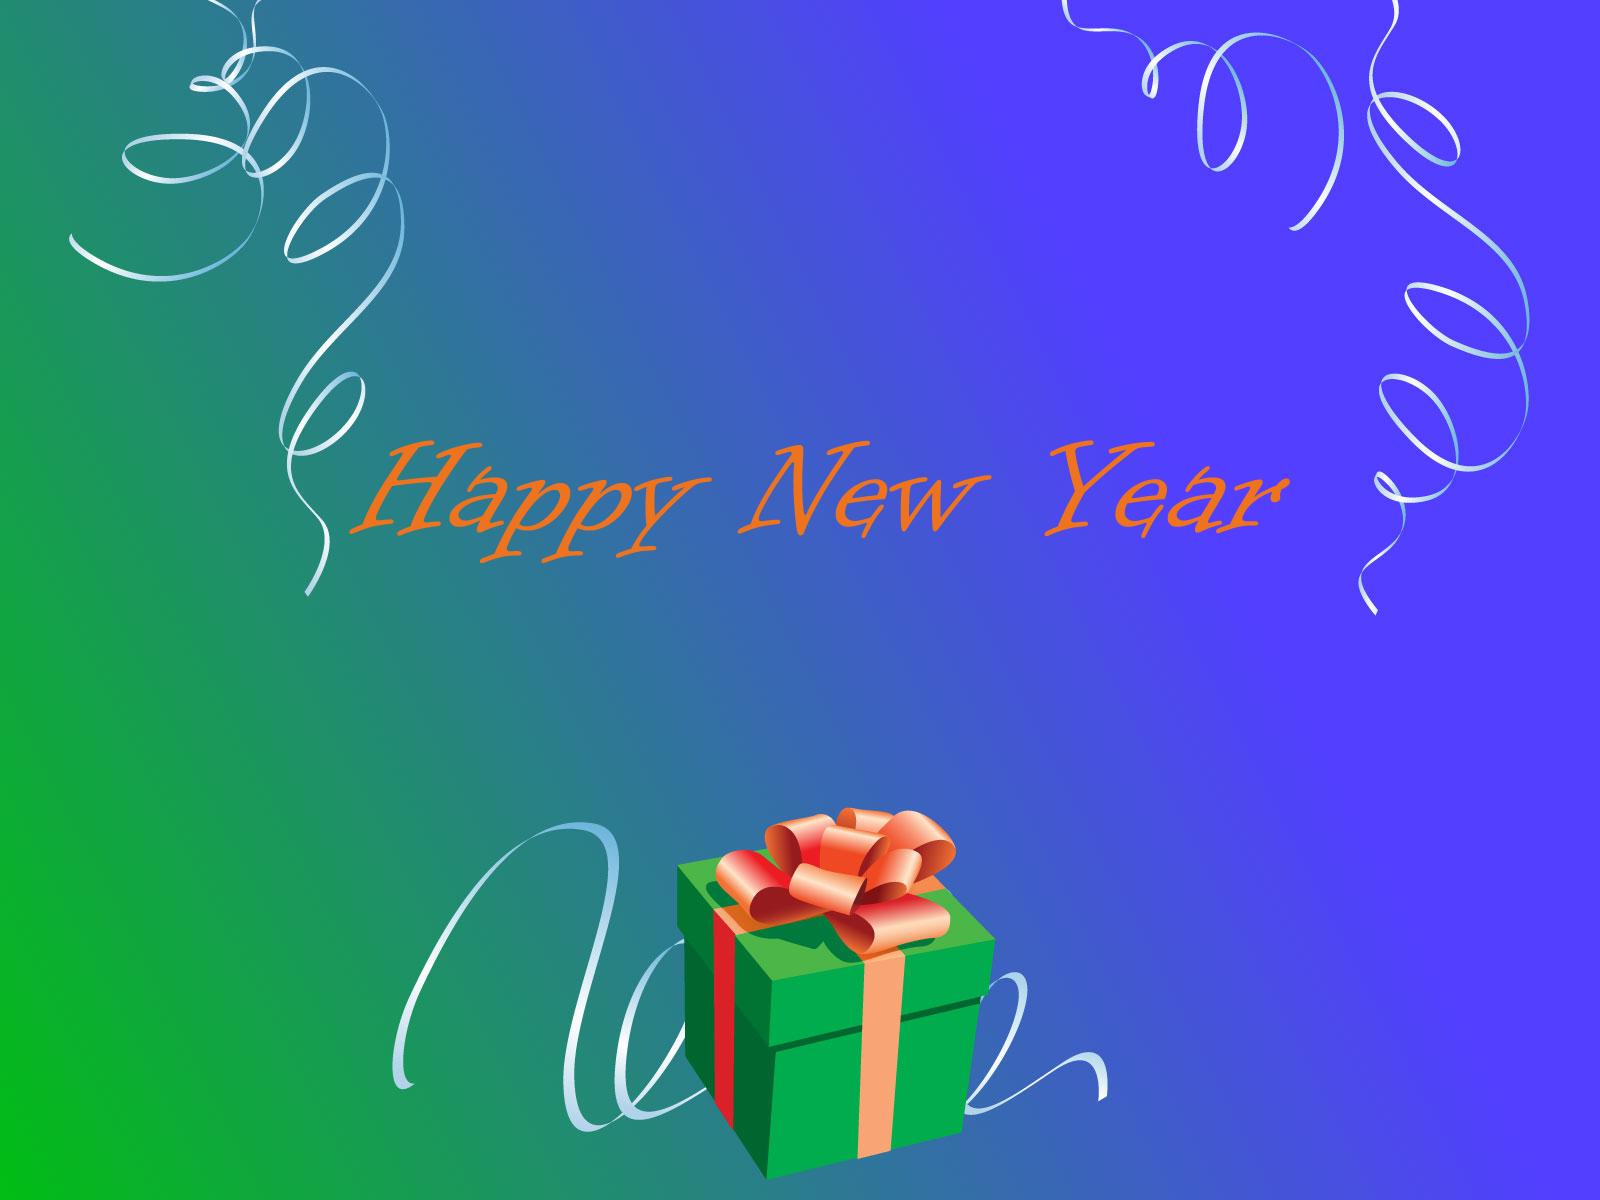 http://3.bp.blogspot.com/-xcvO76pdWaA/ULCWm1TTRbI/AAAAAAAAHR0/TCPfEGcG2eA/s1600/happy-new-year-2013-Wallpapers-1024x768-23.jpg